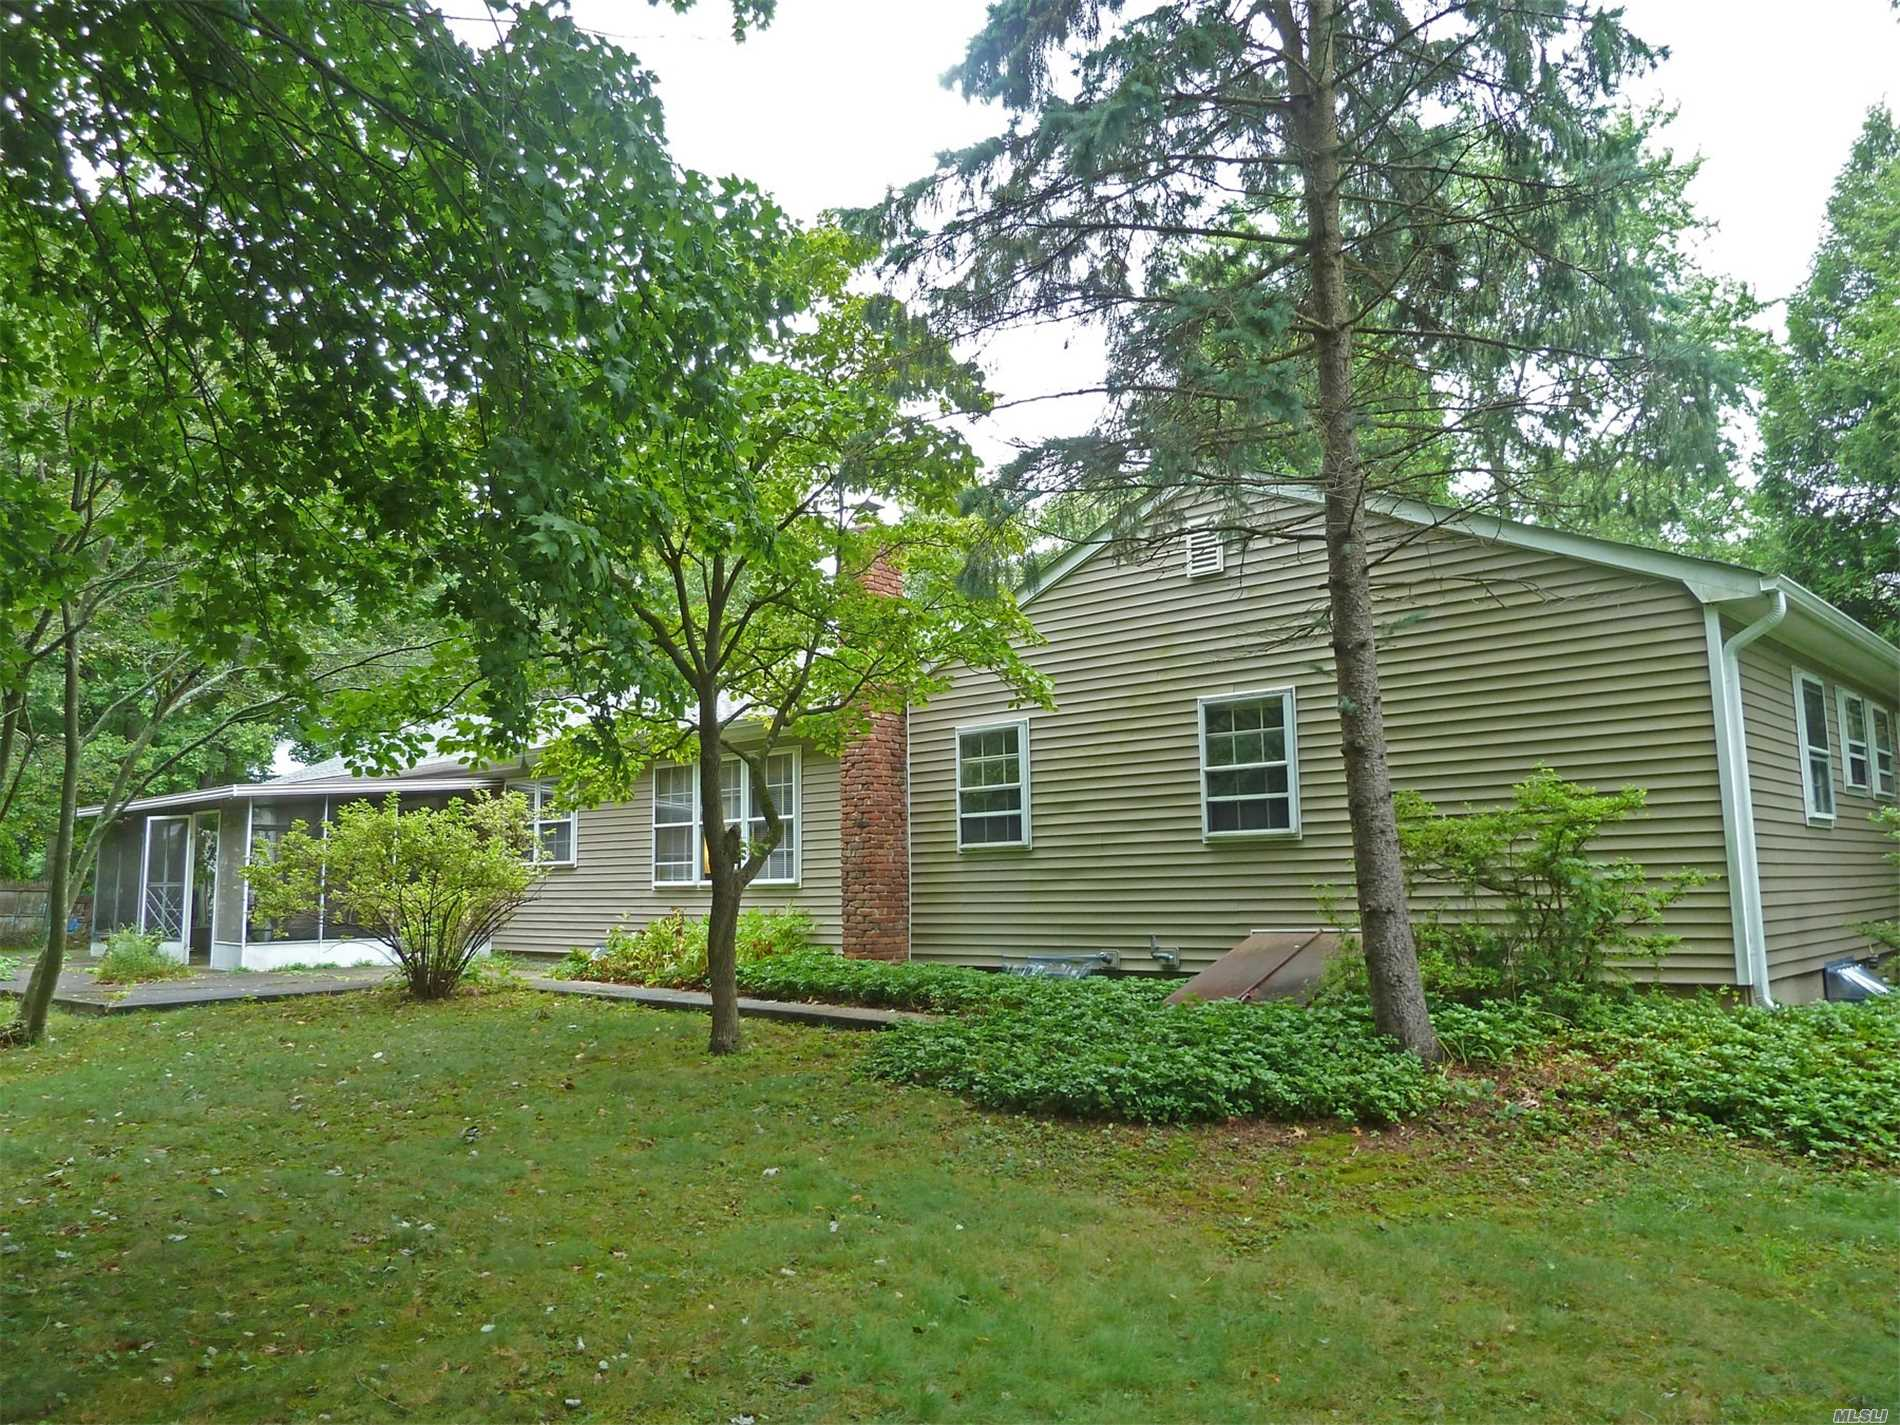 Good Sized Ranch With Nice Floorplan Set On A Quiet Street In The Shoreham-Wading River School District. This Home Has 4 Bedrooms, A Formal Dining Room And Both A Living Room And A Den W/Fireplace. Real Oak Floors In All Bedrooms And In The Hall. Oak Probably Under The Carpet In The Living And Dining Rooms. First Floor Laundry. It Has An Enclosed Patio Out Back And Sits On Just Over One Half Of A Flat Acre. Full Basement With Inside & Outside Entrances. Newer Roof. Come See It Soon!!